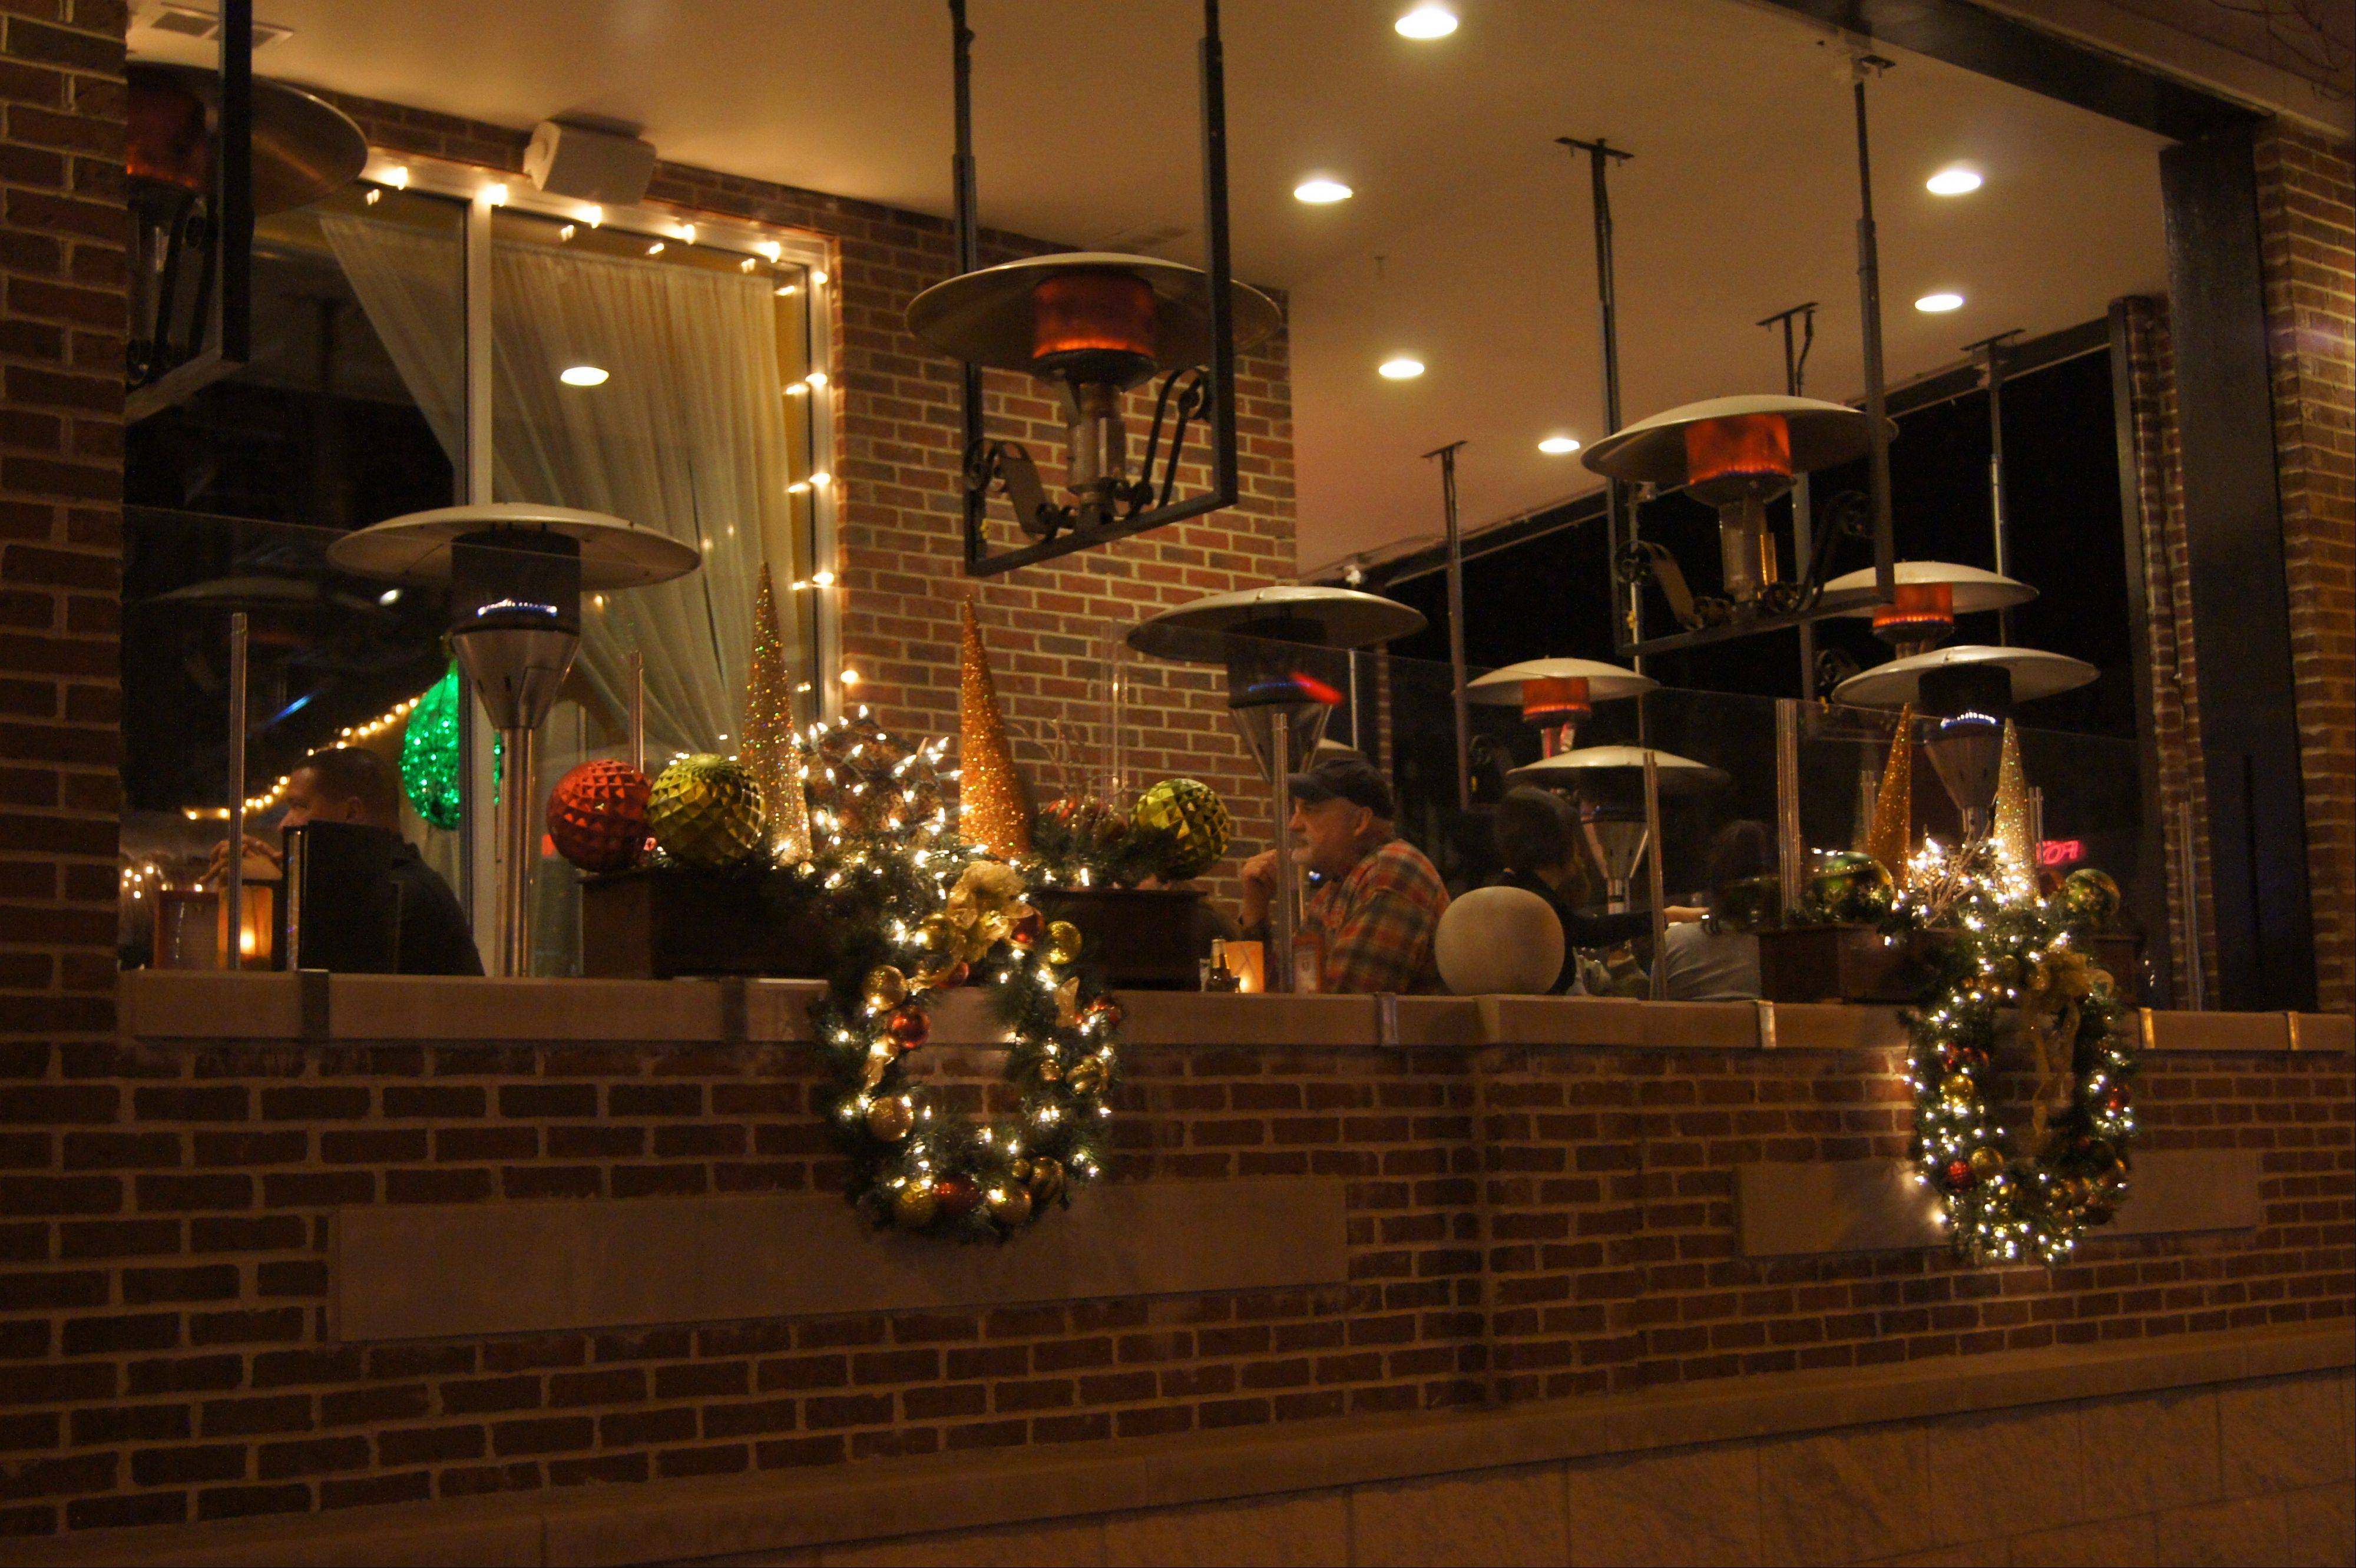 Casa Bonita Mexican Restaurant and Tequila Bar in Libertyville recently installed shatterproof glass panels and heaters so its open-air patio doesn't have to close in the winter. Restaurant analyst Donna Hood Crecca says it's part of a national trend.